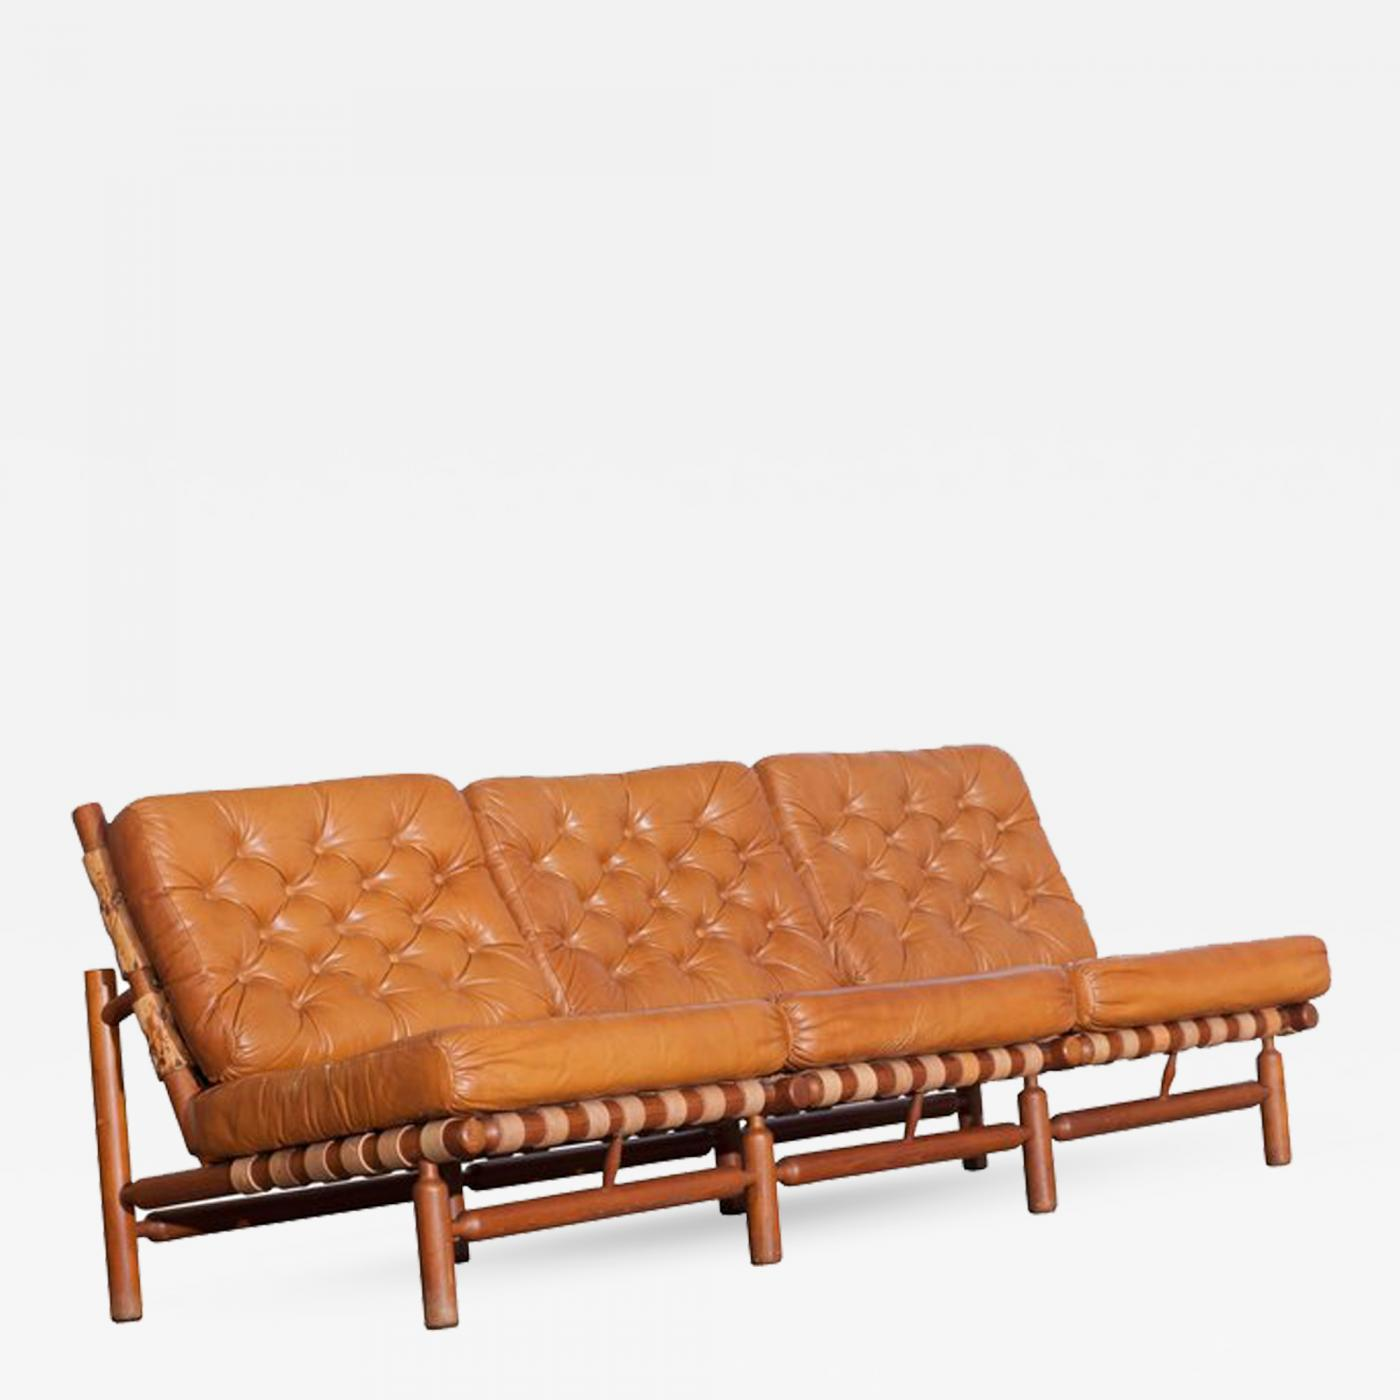 Chaise Tapiovaara Ilmari Tapiovaara Ilmari Tapiovaara Three Seat Sofa In Cognac Leather